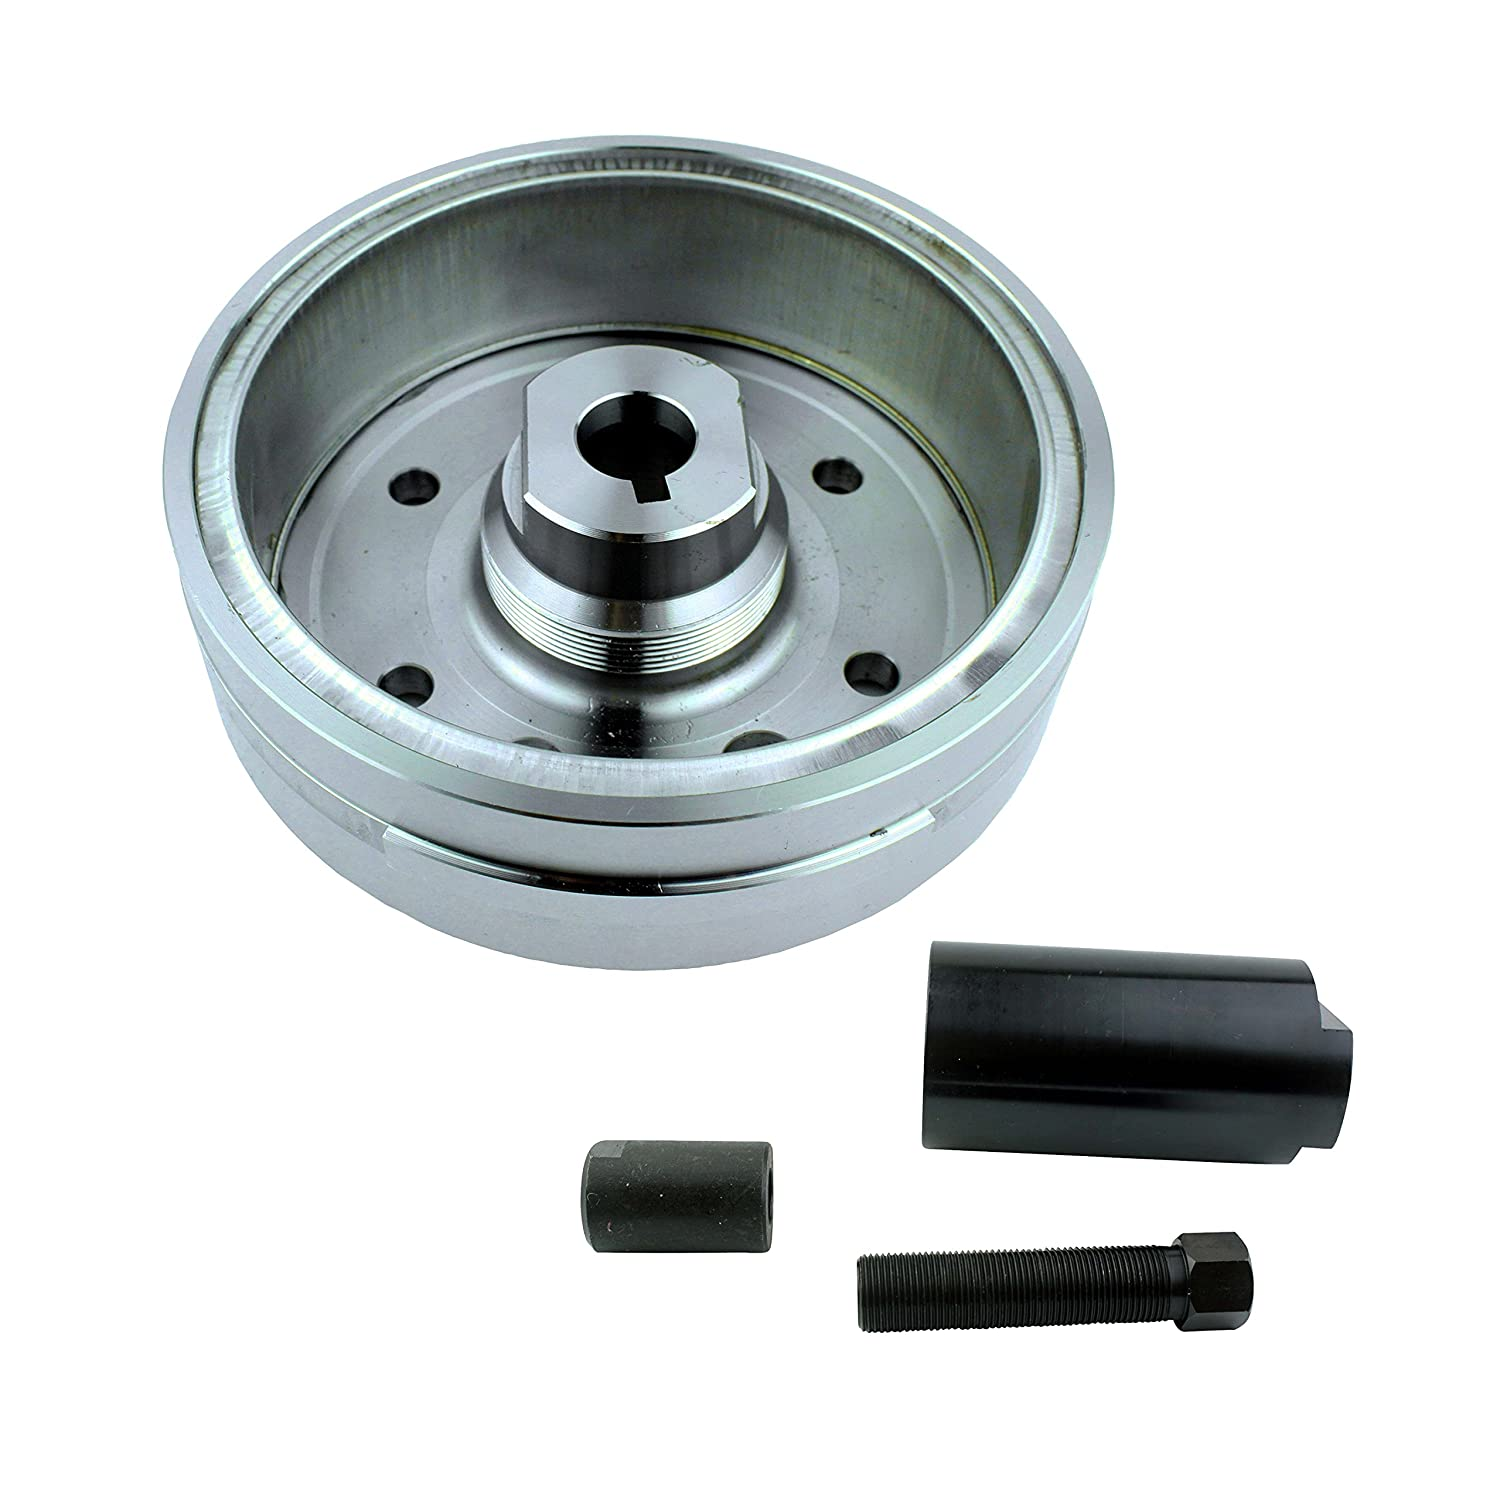 Amazon.com: Kit Improved Magneto Flywheel + Puller For Arctic Cat 375 400  TBX 400 TRV 400 2x4 4x4 Automatic Manual 2002 2003 2004 2005 2006 2007:  Automotive